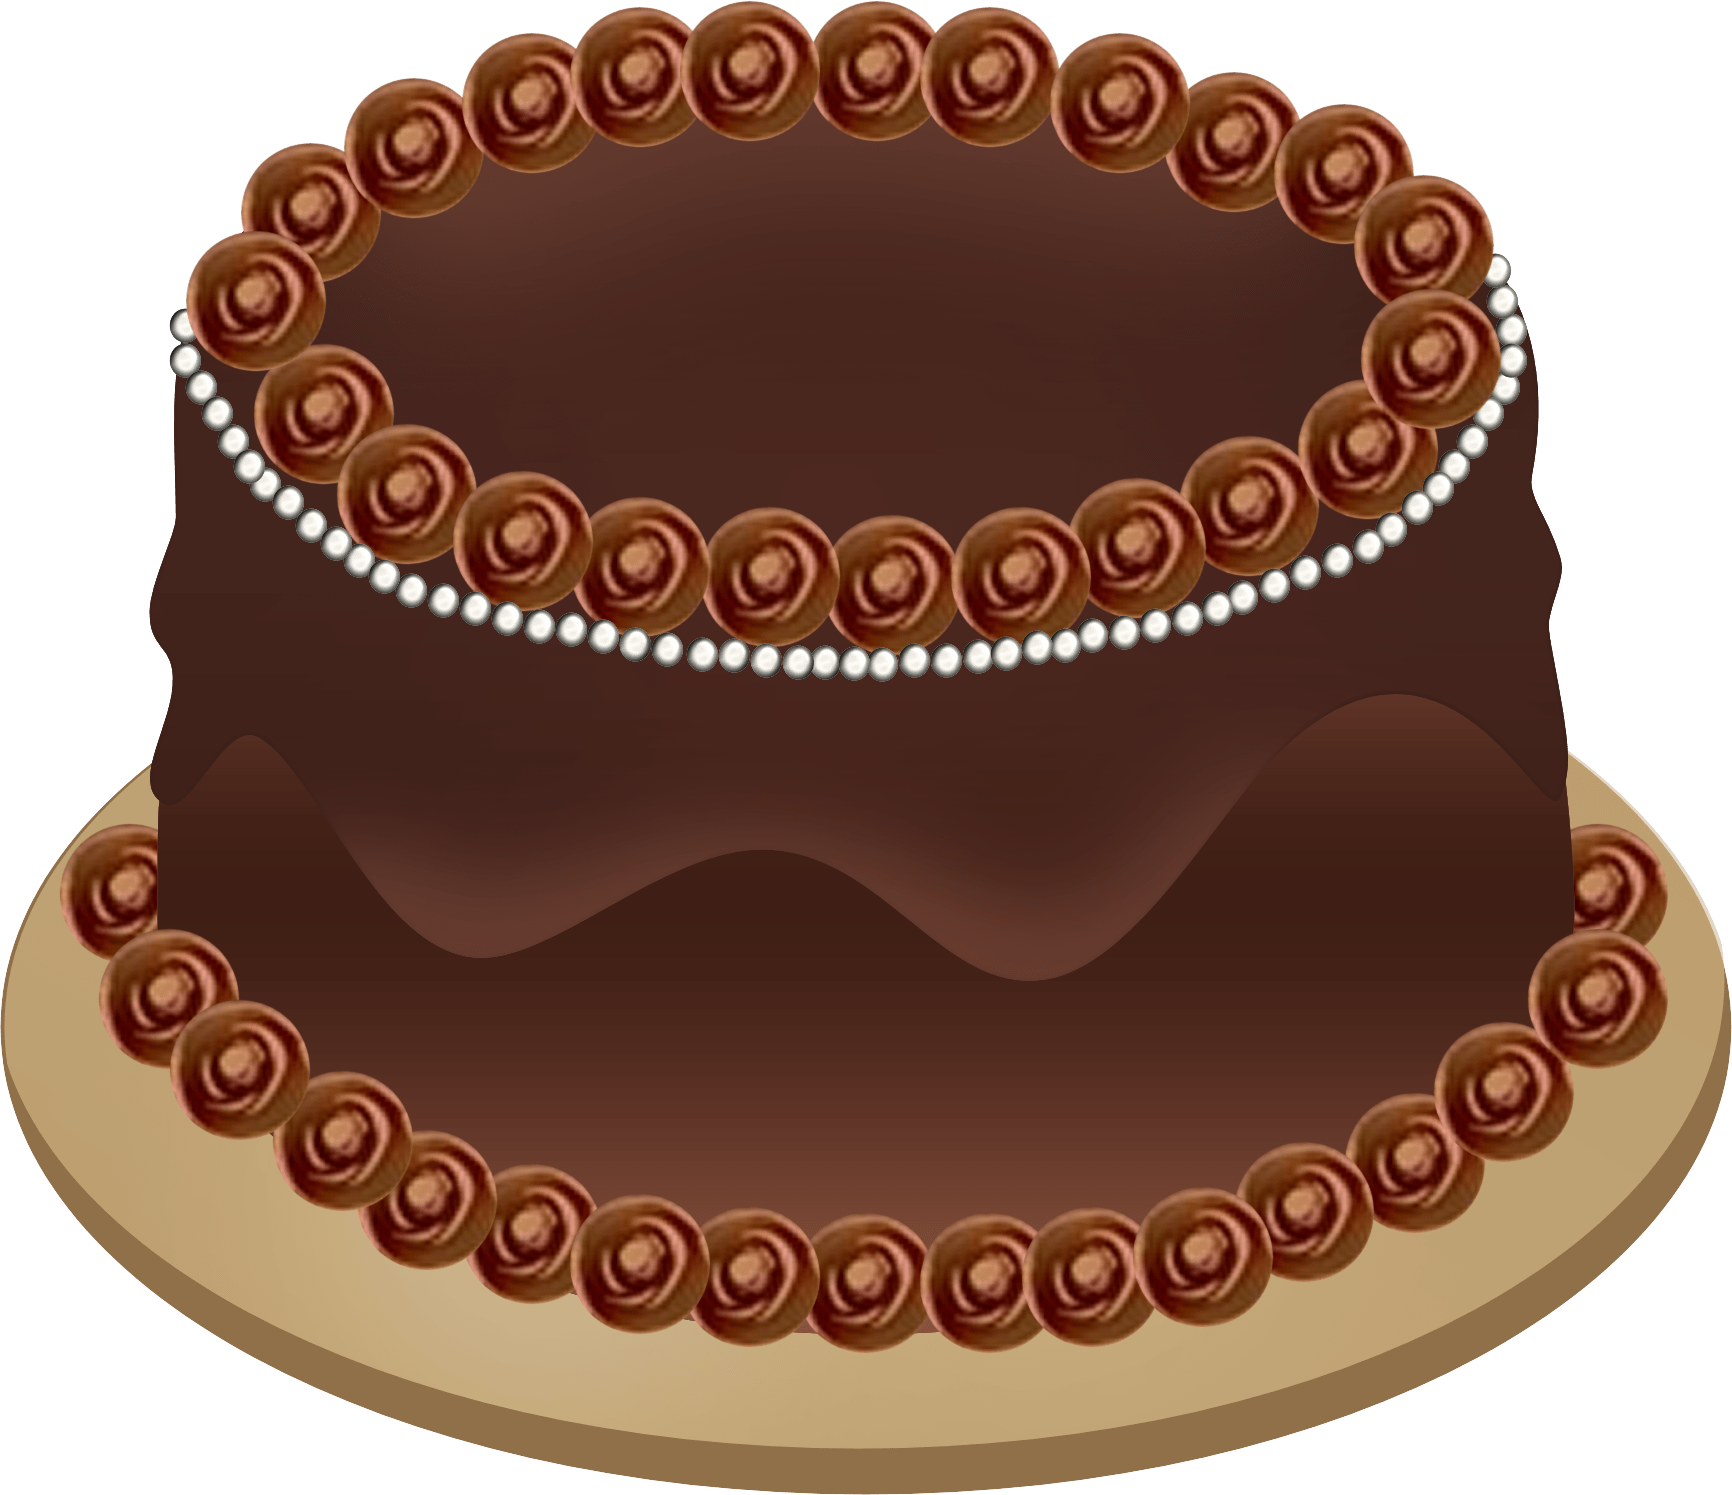 hight resolution of chocolate cake clipart png